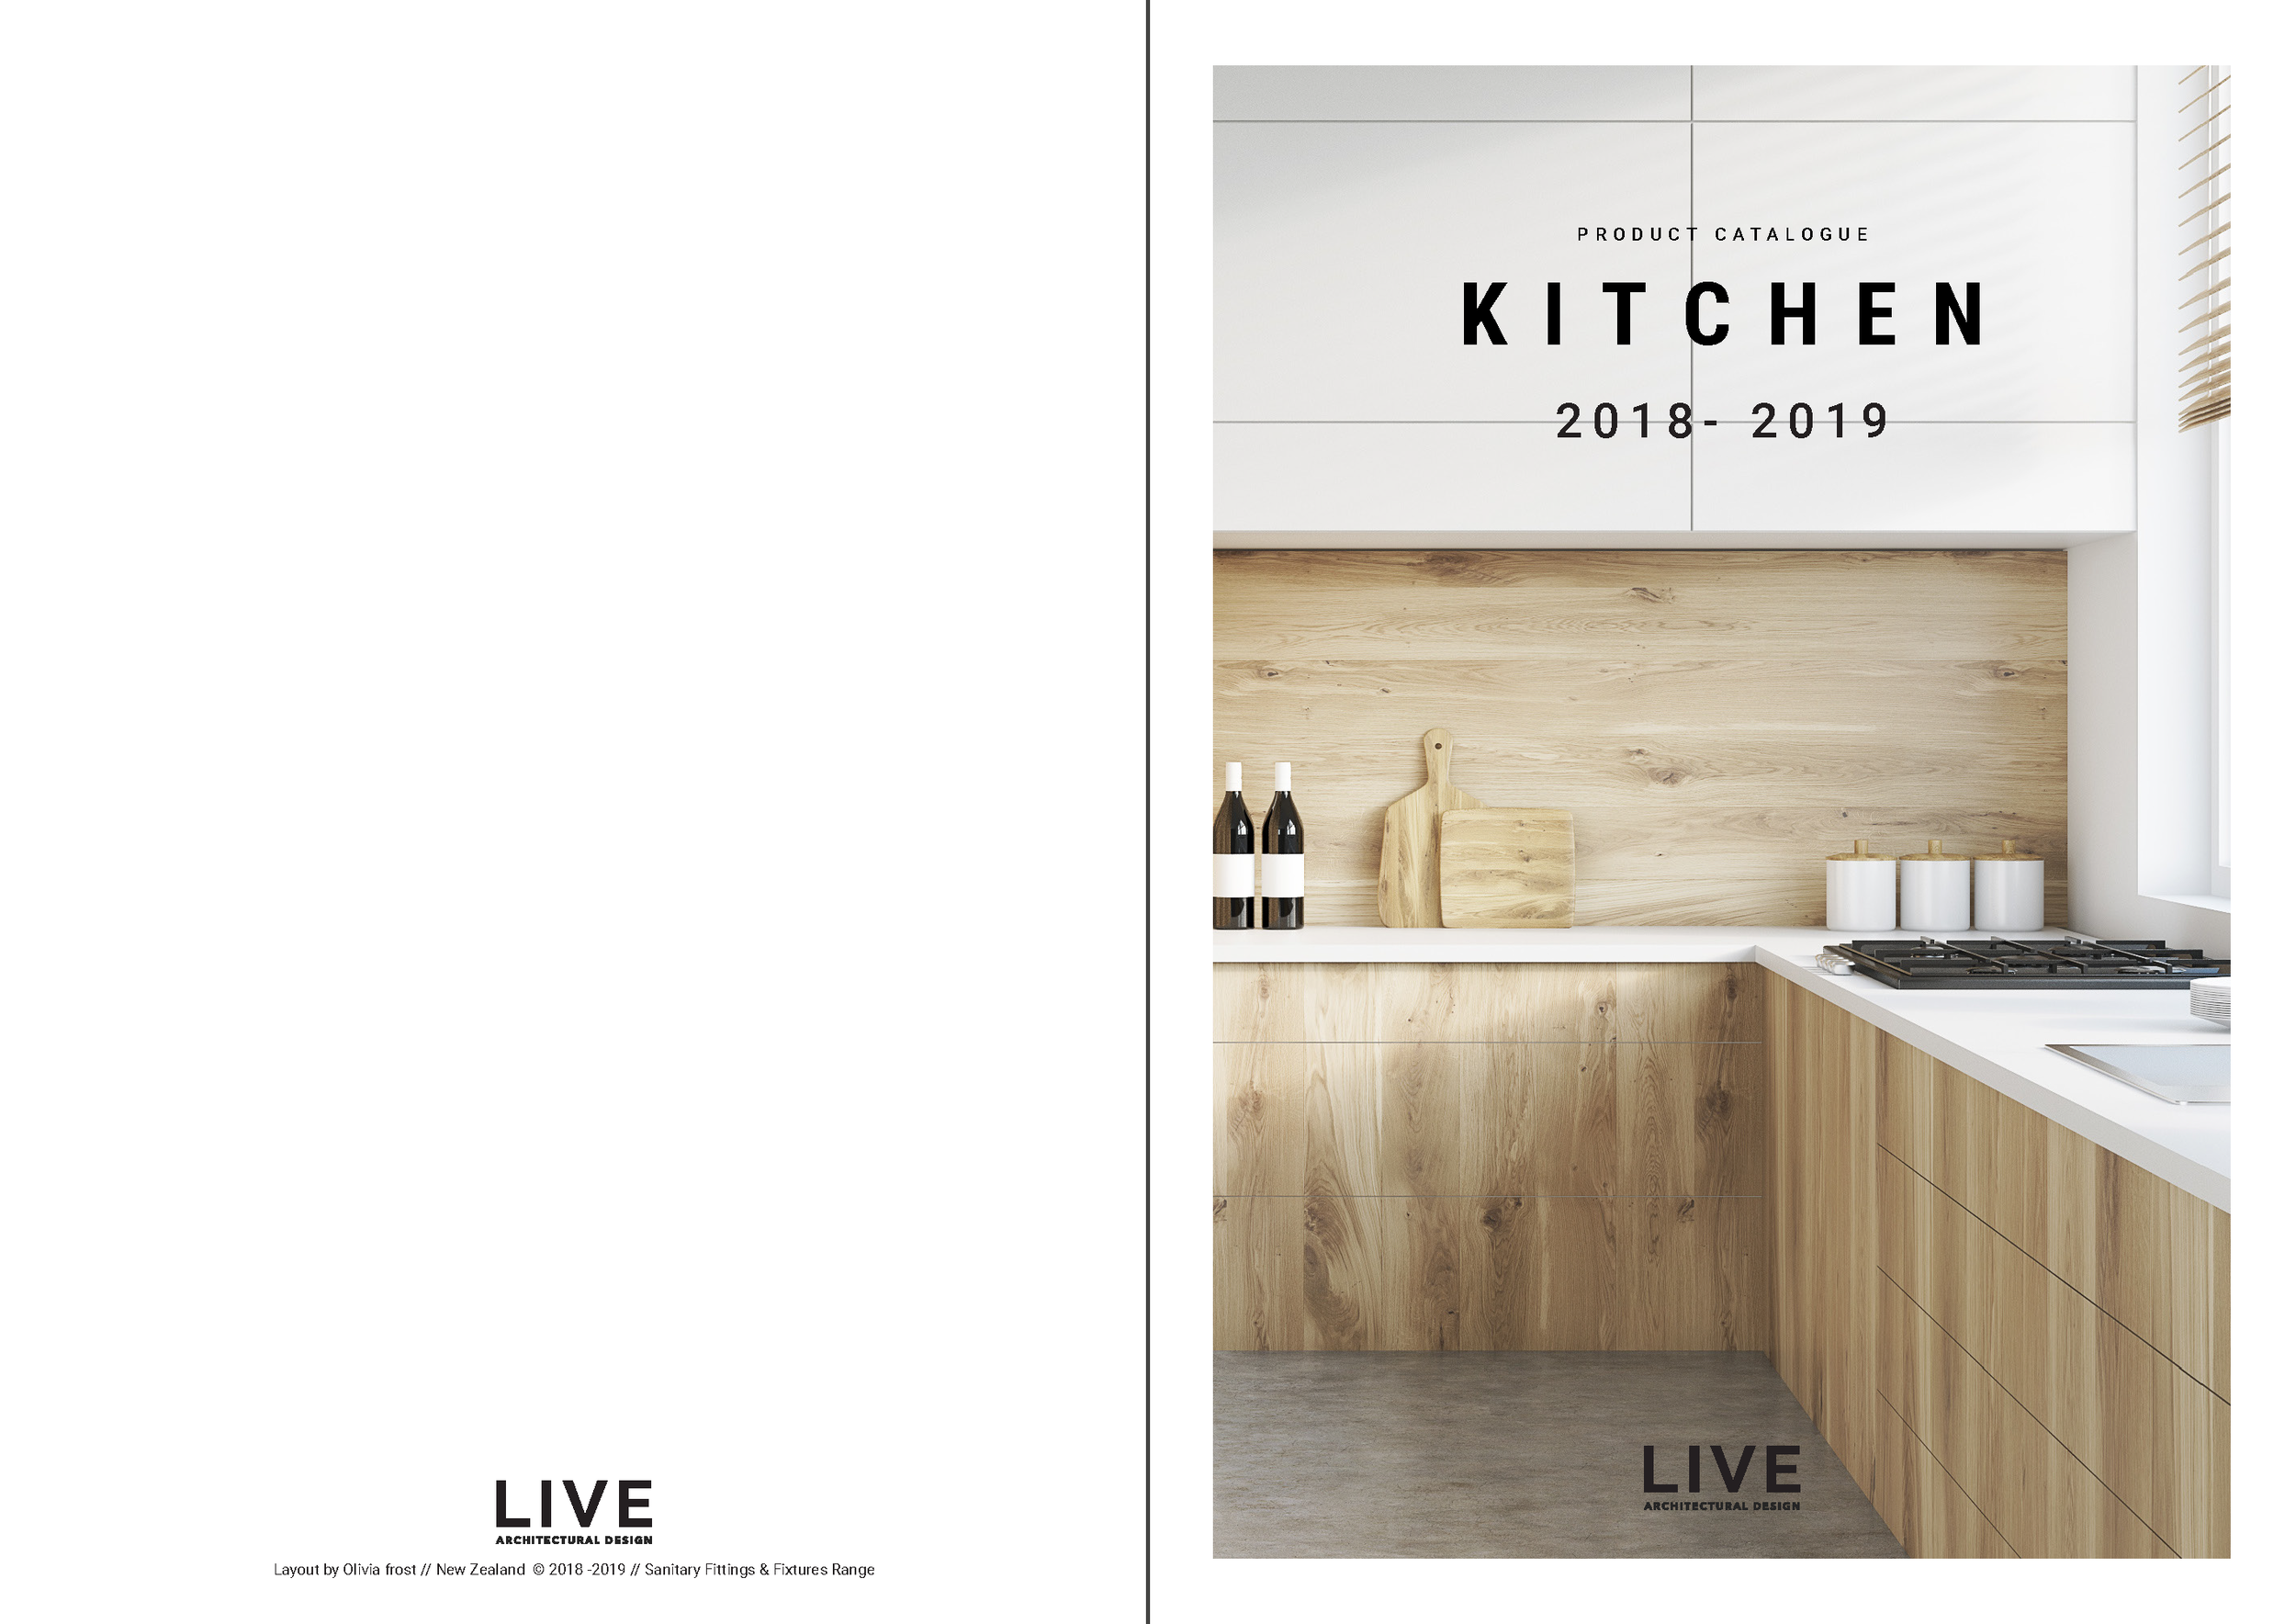 BATHROOM-KITCHEN - 5.06 - 1A - OLIVIA FROST_Page_20.png